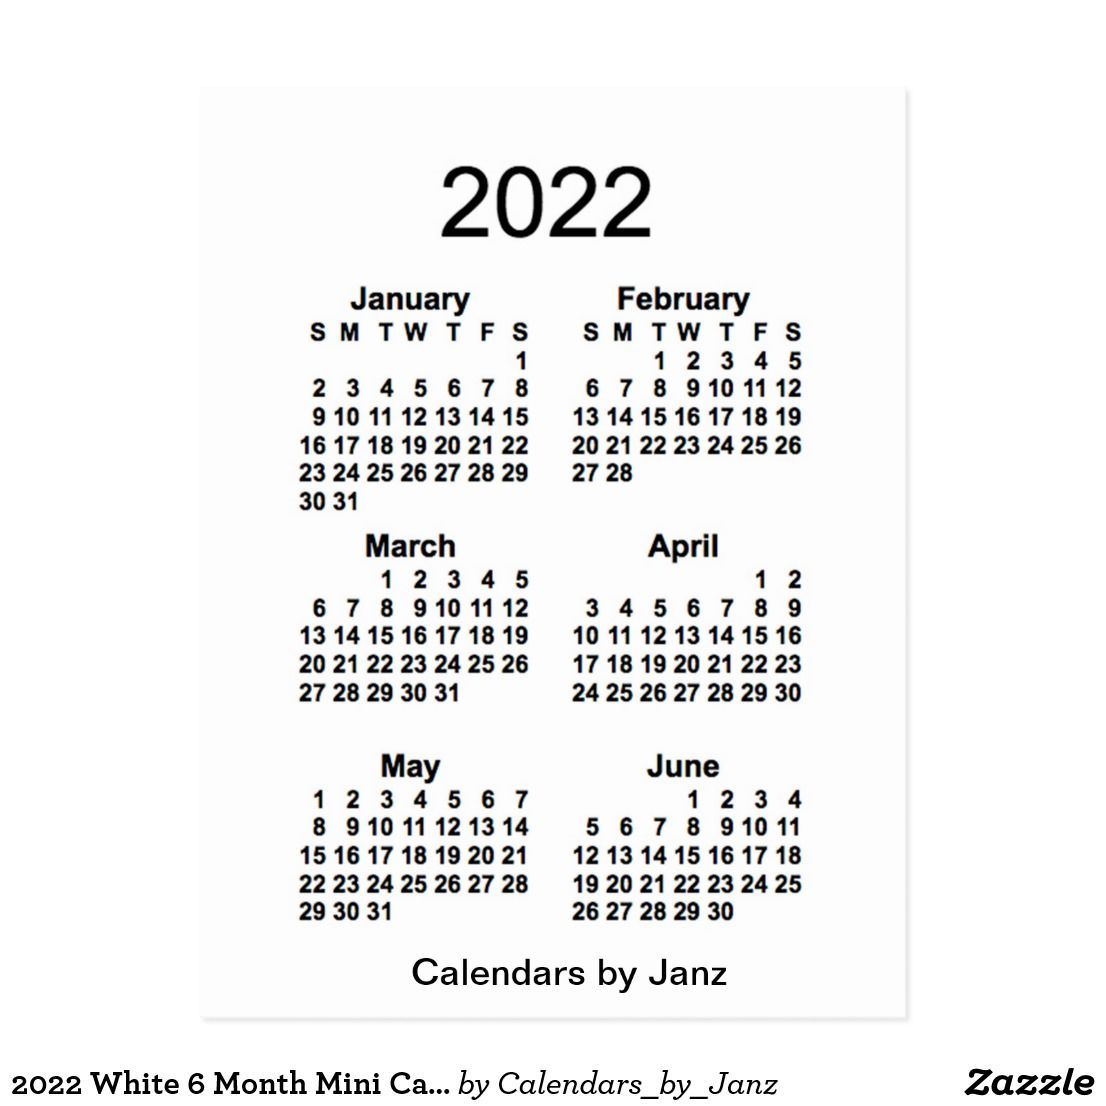 2022 White 6 Month Mini Calendar By Janz Postcard Zazzle Com Mini Calendars Custom Calendar Calendar Design